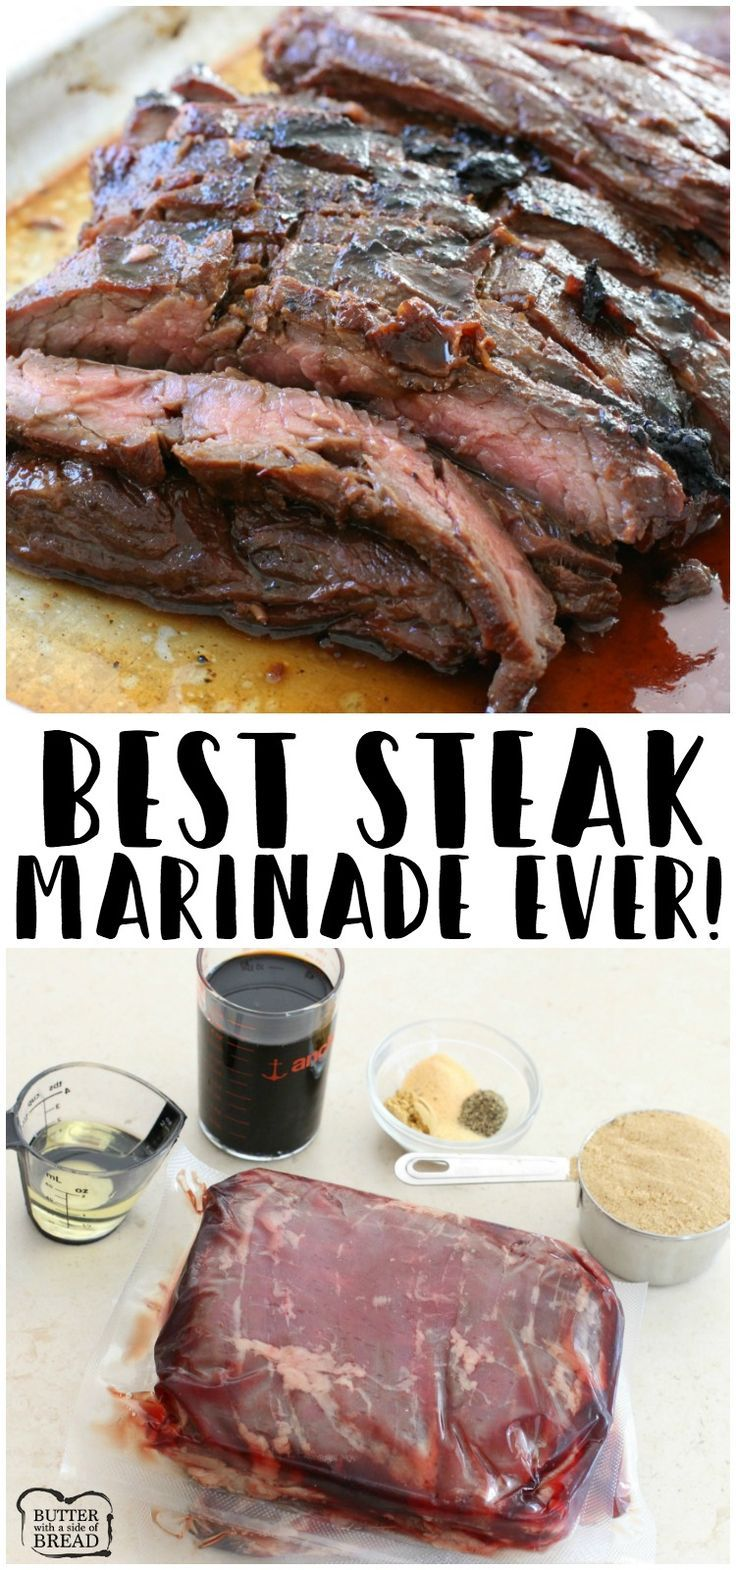 Insanely delicious Steak marinade recipe that's a family favorite- it really is THE BEST! Comes together in minutes and you won't believe the incredible flavor! Easy steak marinade recipe from Butter With A Side of Bread via @ButterGirls